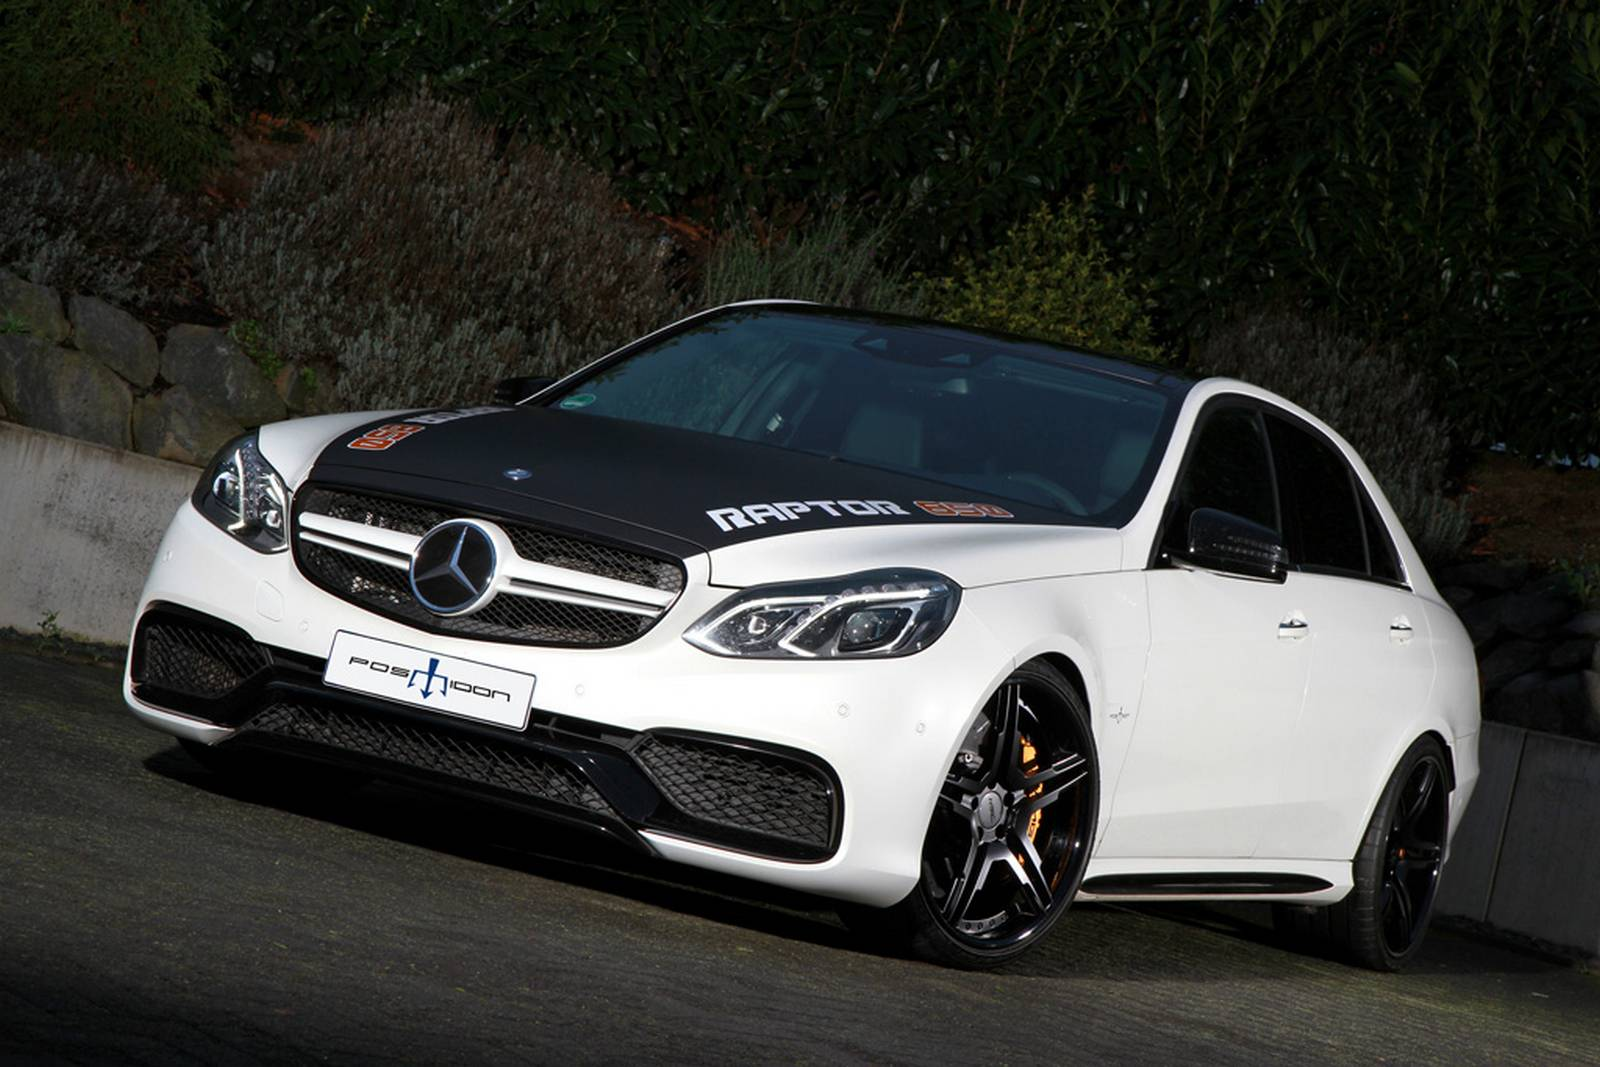 Official mercedes benz e63 amg by posaidon gtspirit for Mercedes benz e 63 amg